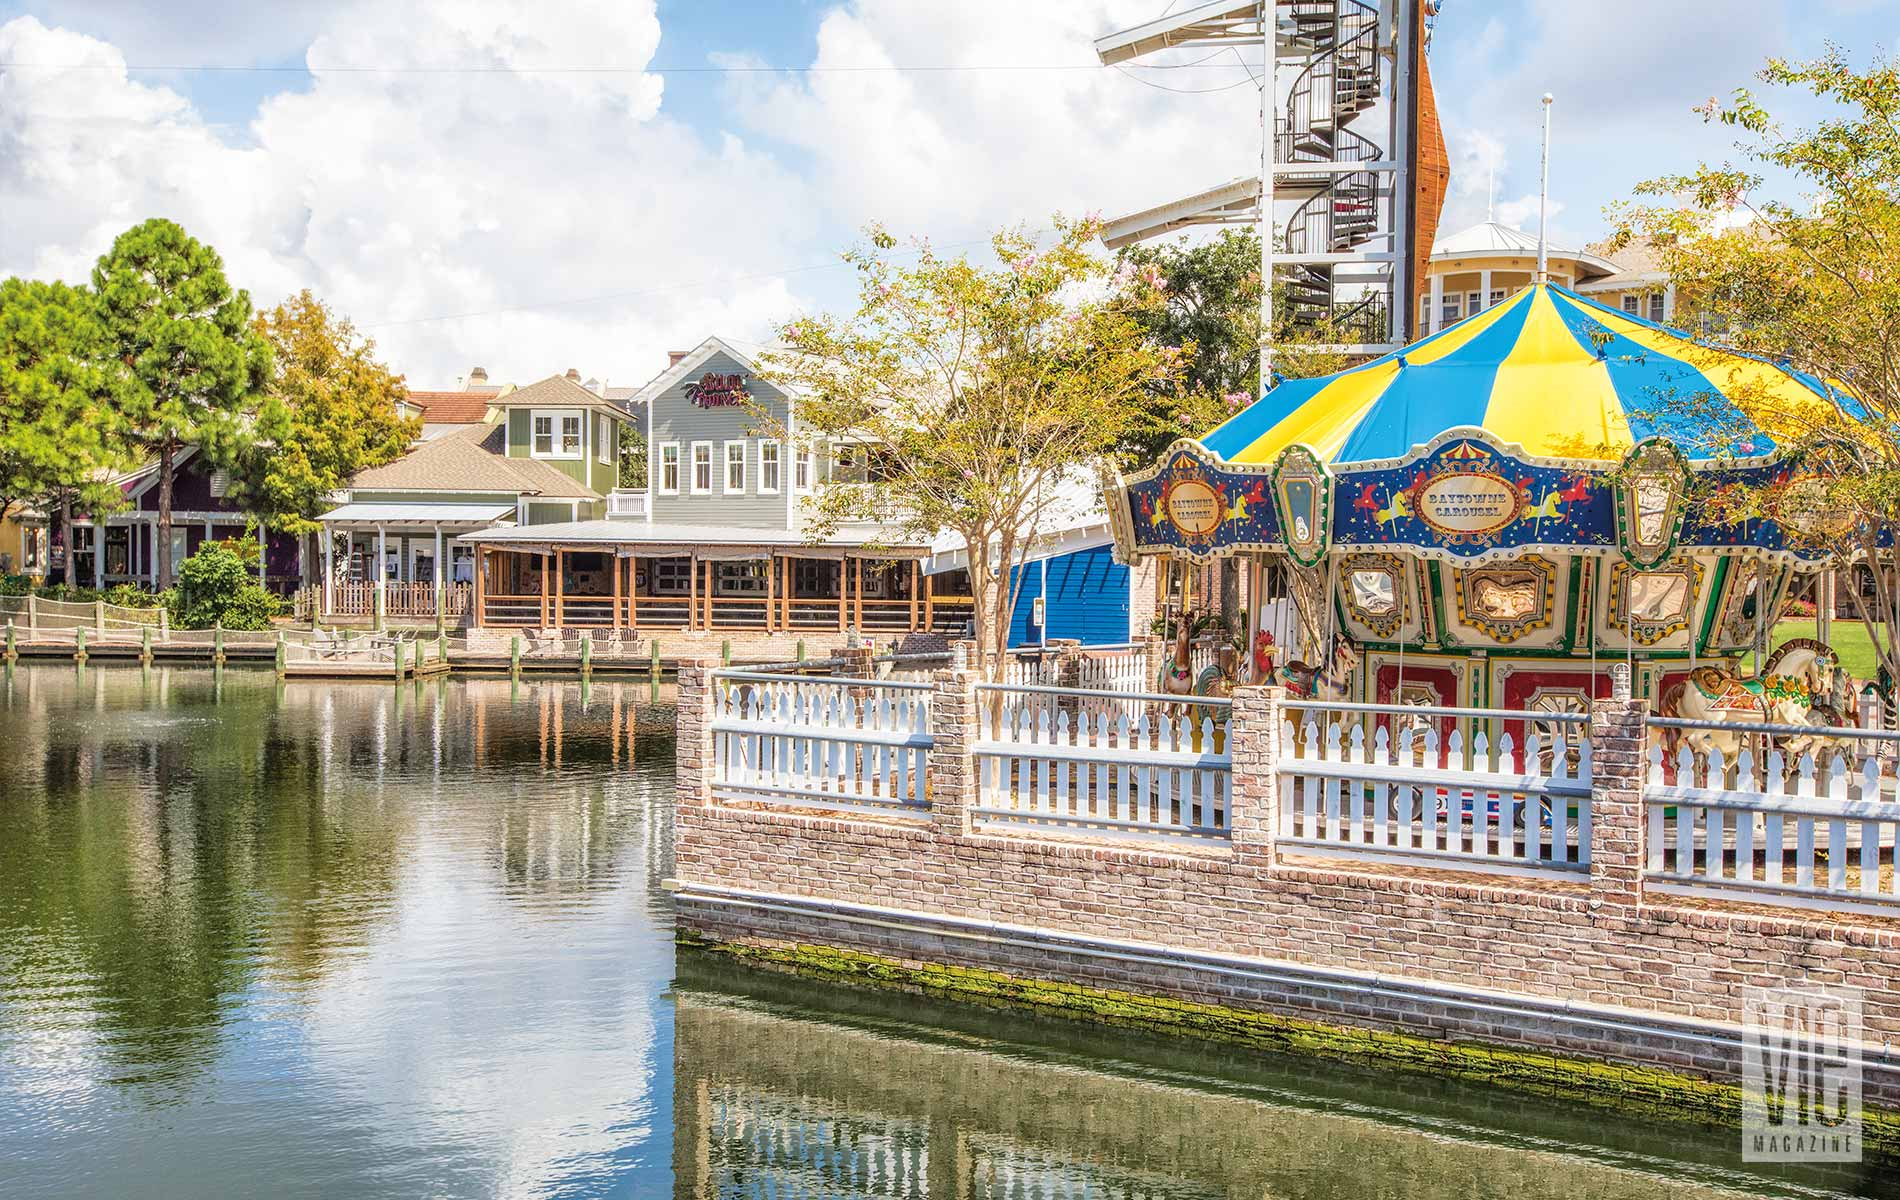 Carousel at The Village of Baytowne Wharf Blue skies fun games family experience